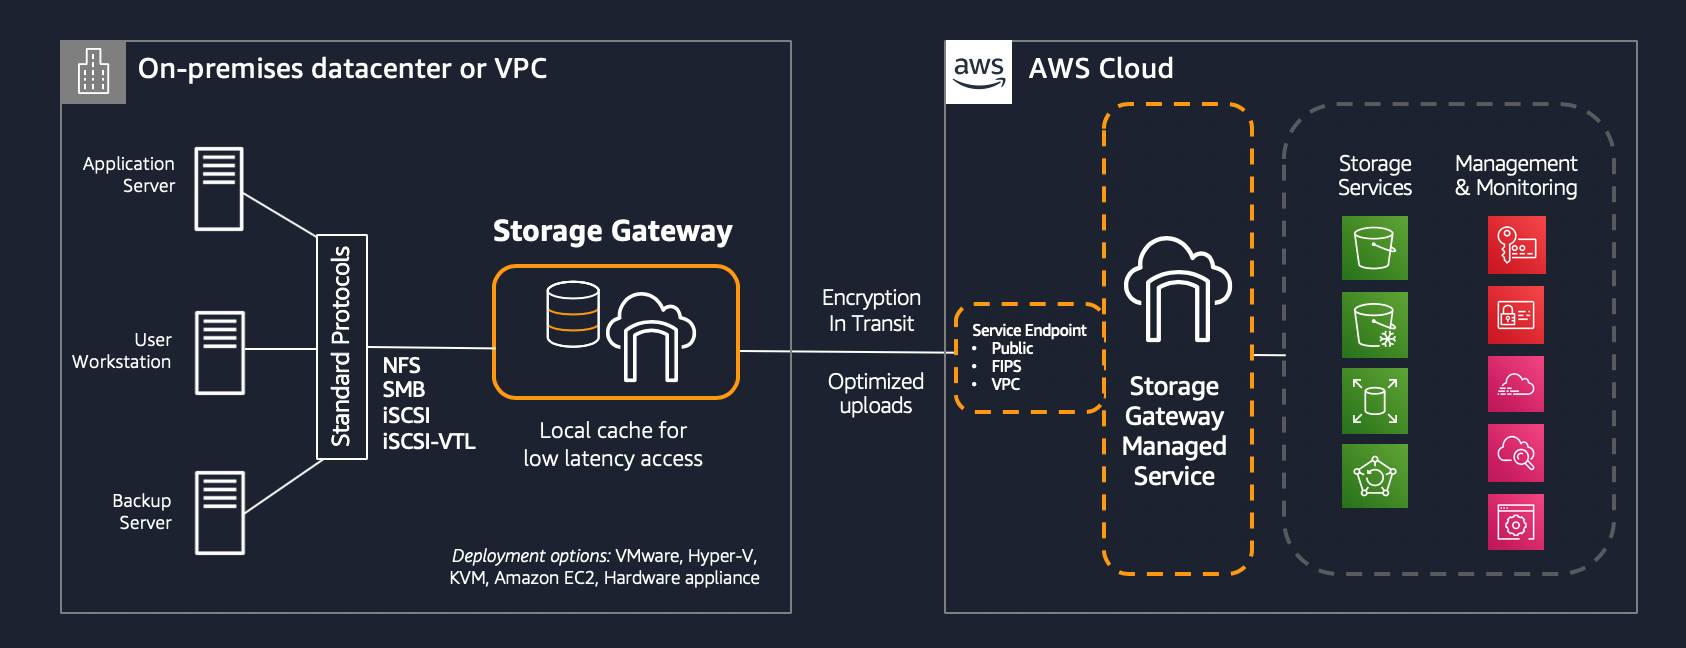 Diagram of how Storage Gateway is deployed in a customer environment, and how it communicates back to the AWS Storage Gateway Managed Service